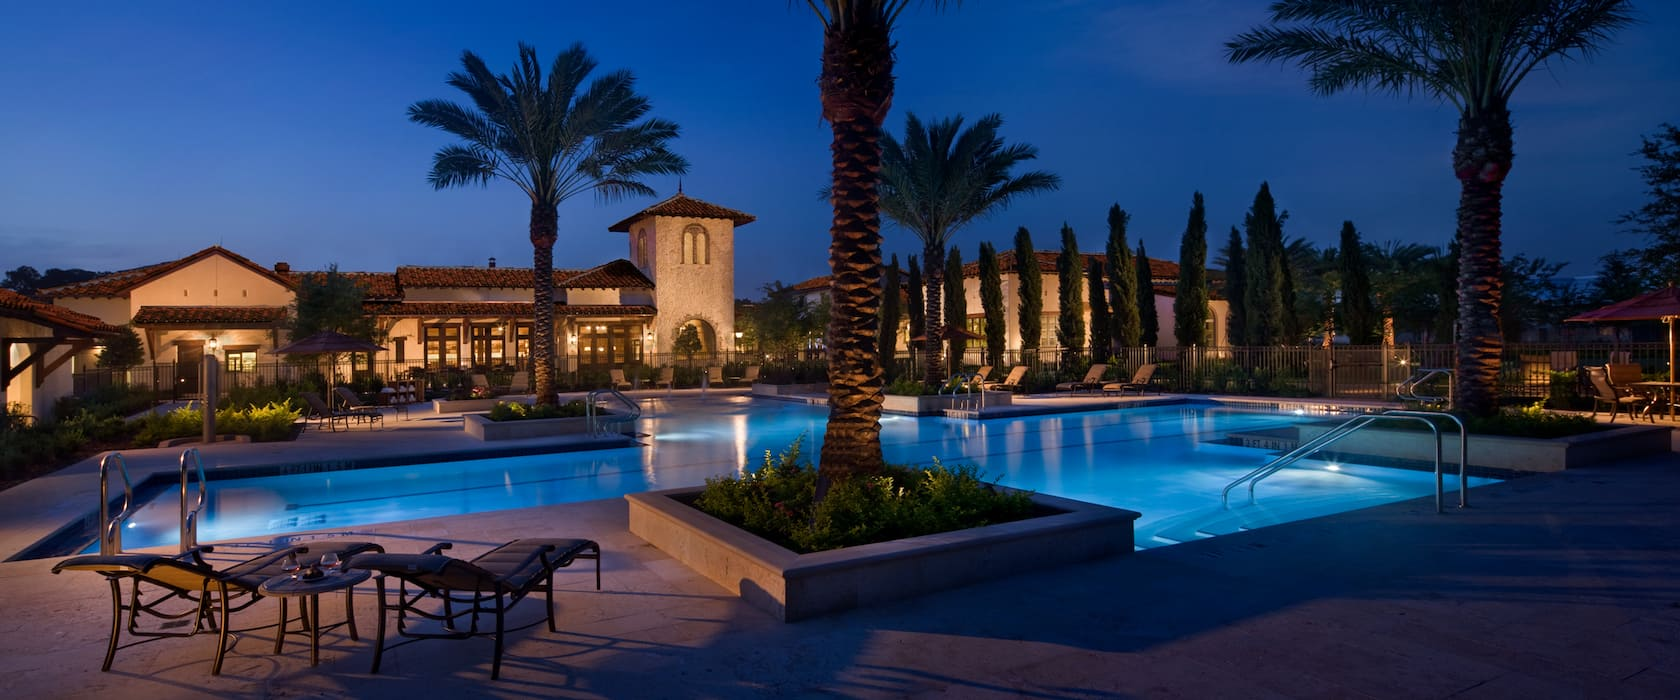 The Golden Oak Clubhouse and pool area lit up at night